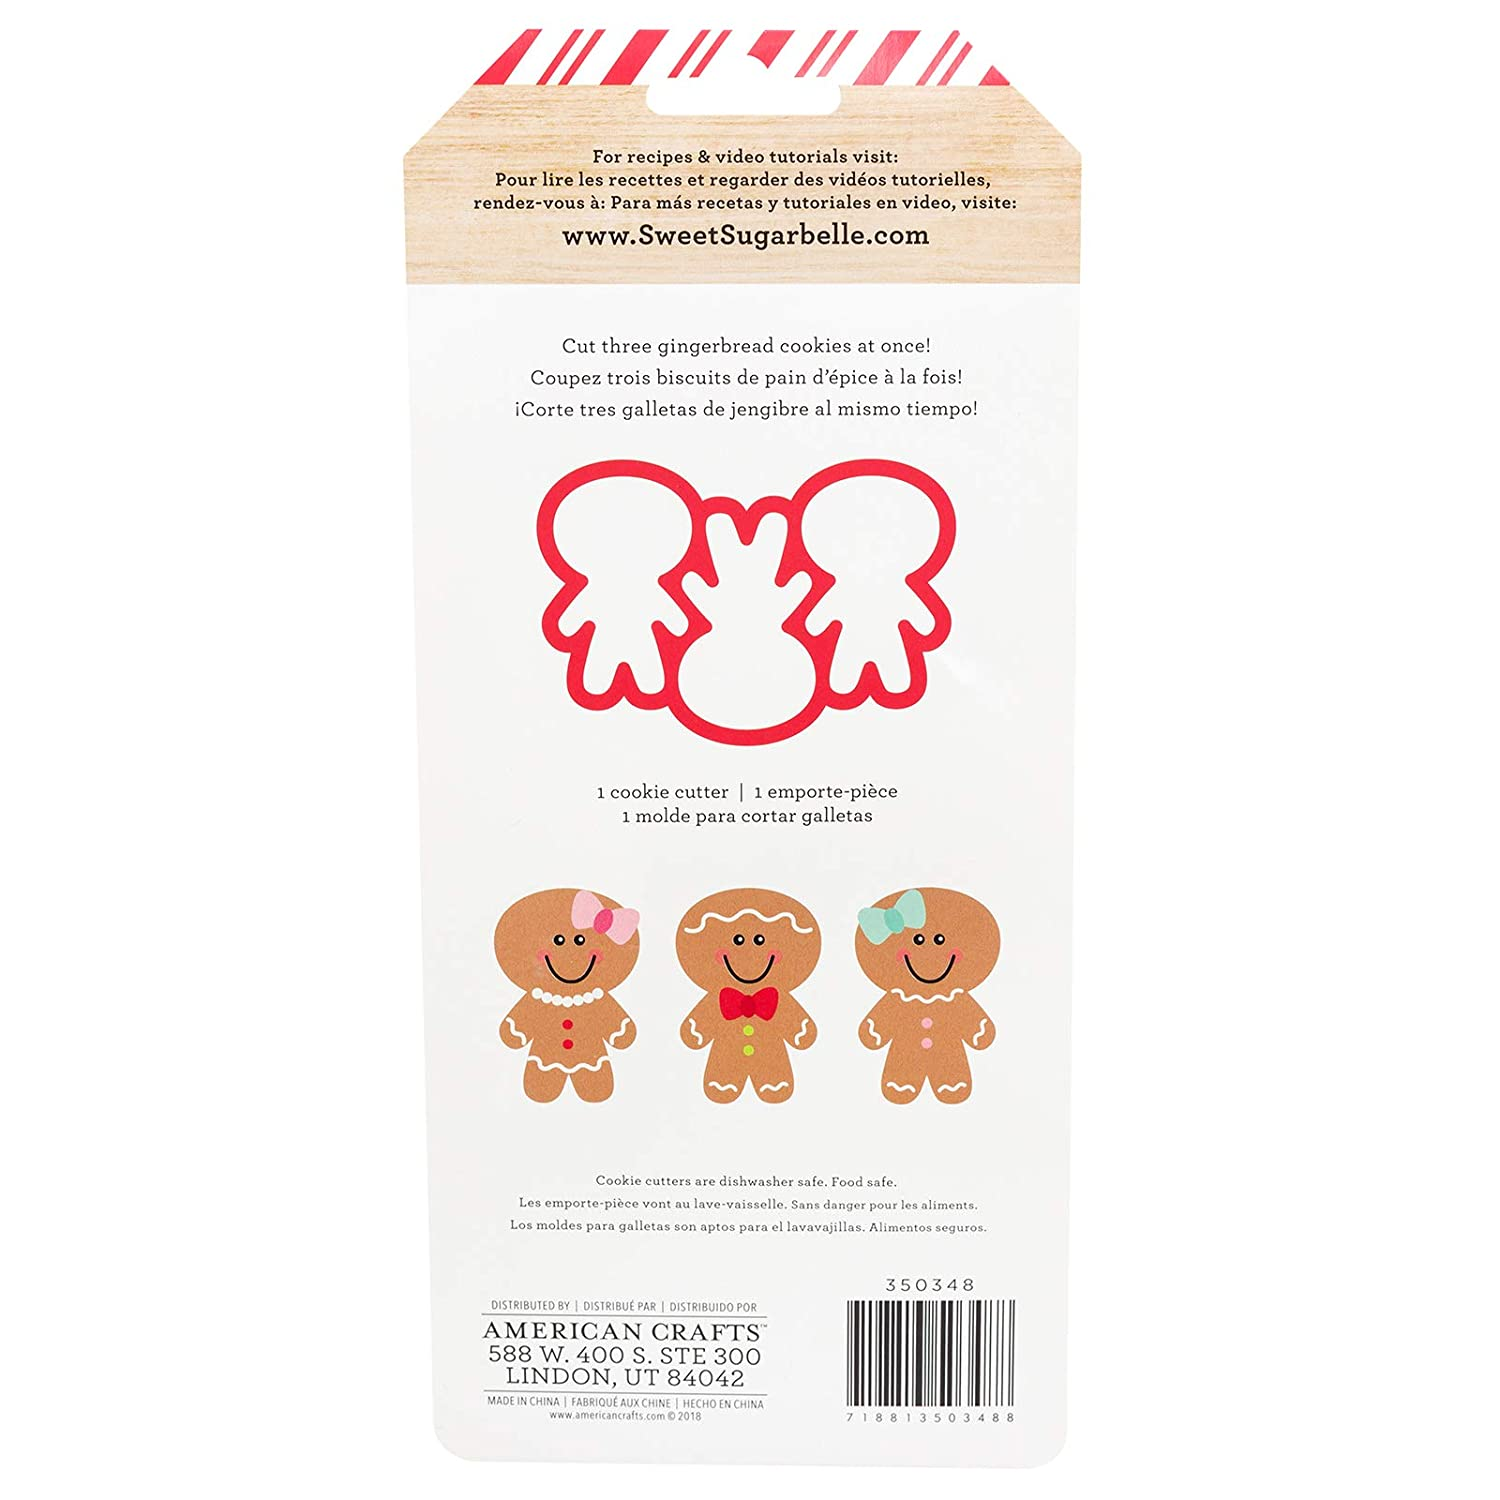 Amazon.com: Sweet Sugarbelle 350348 Gingerbread Mini Cookie Cutter Mutli: Arts, Crafts & Sewing